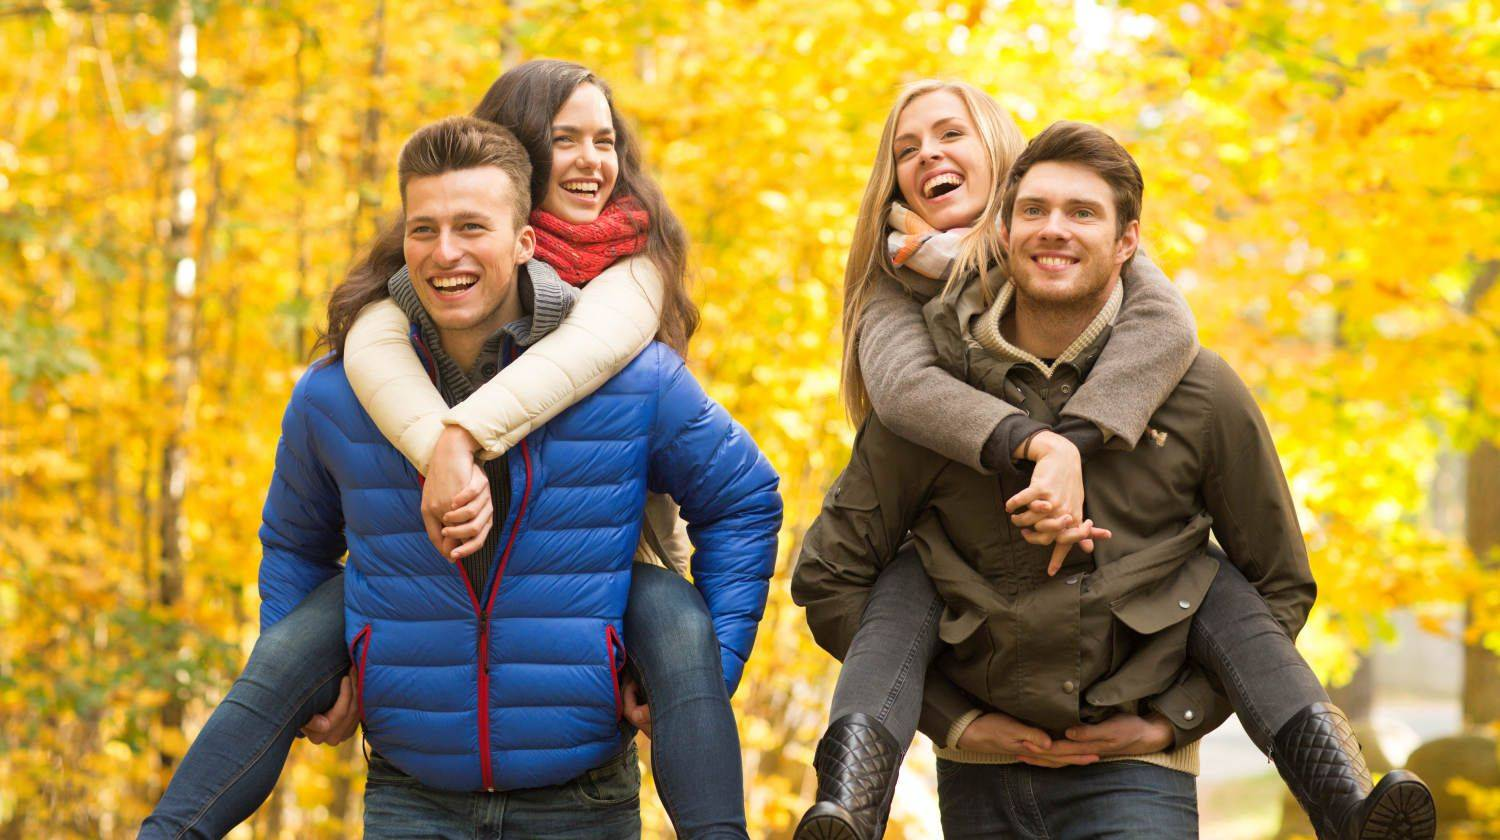 Smiling friends having fun in autumn park | Baby It's Gold Outside! Outdoor Fall Activities To Do To Stay Active This Season | Fall activities | Featured